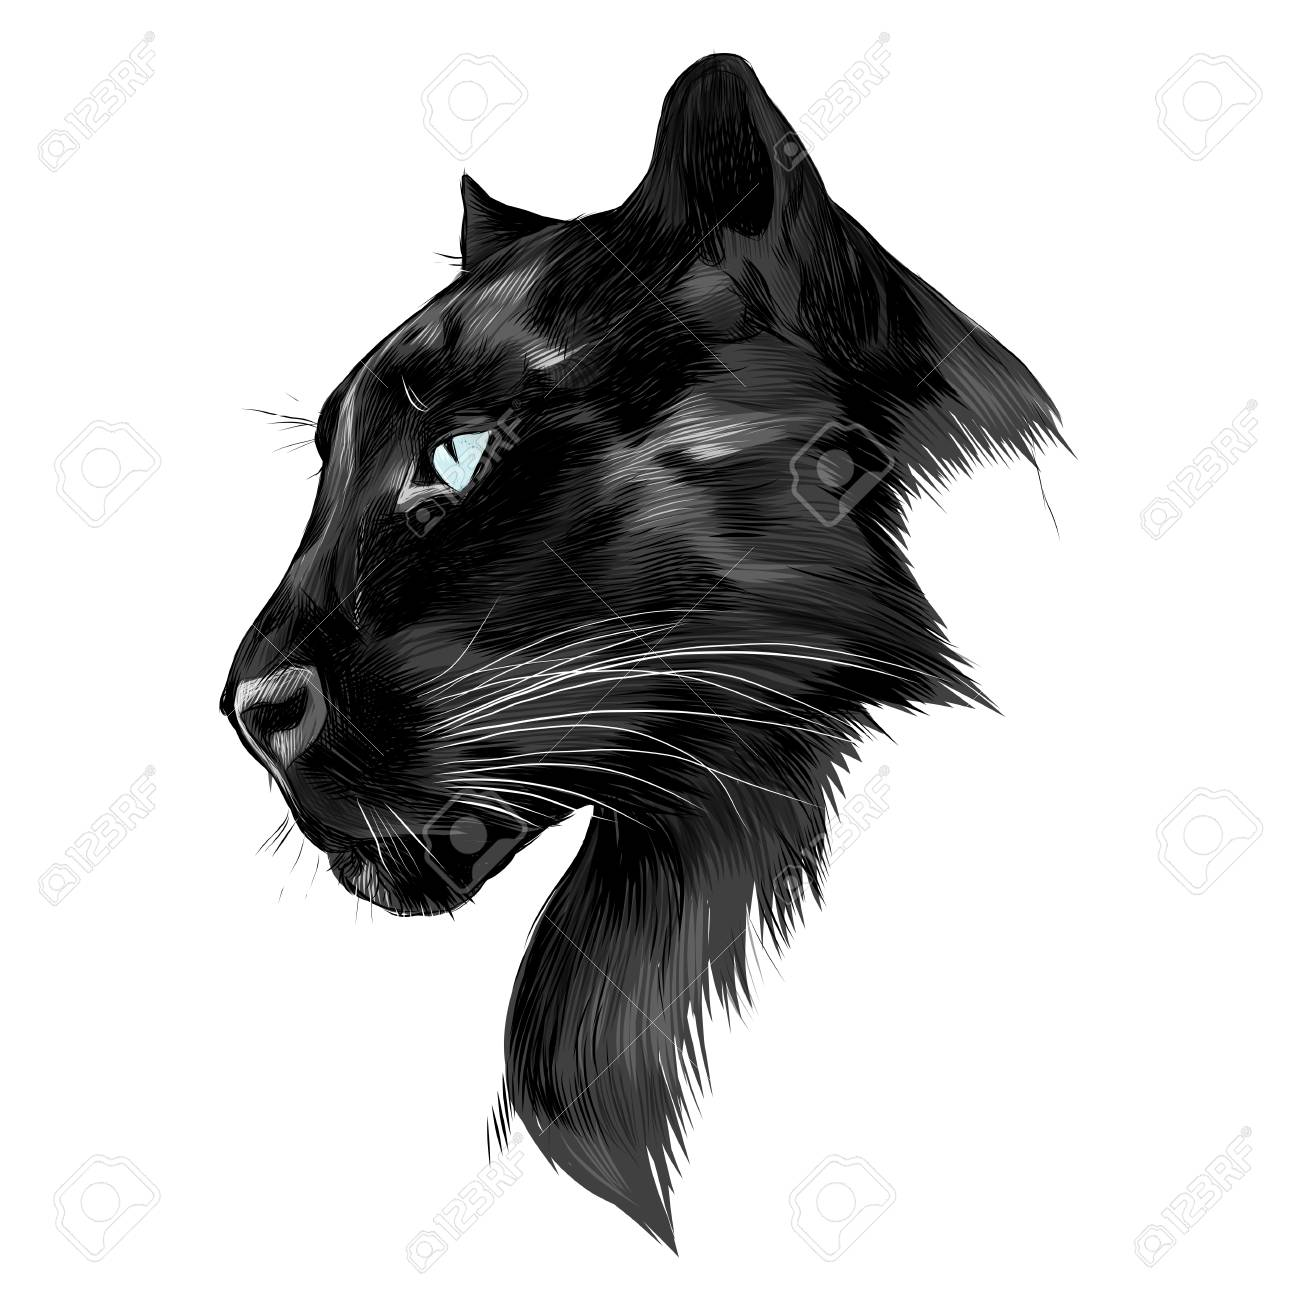 The head is black Panther's profile looking into the distance, graphics sketch vector black and white drawing. - 74346746